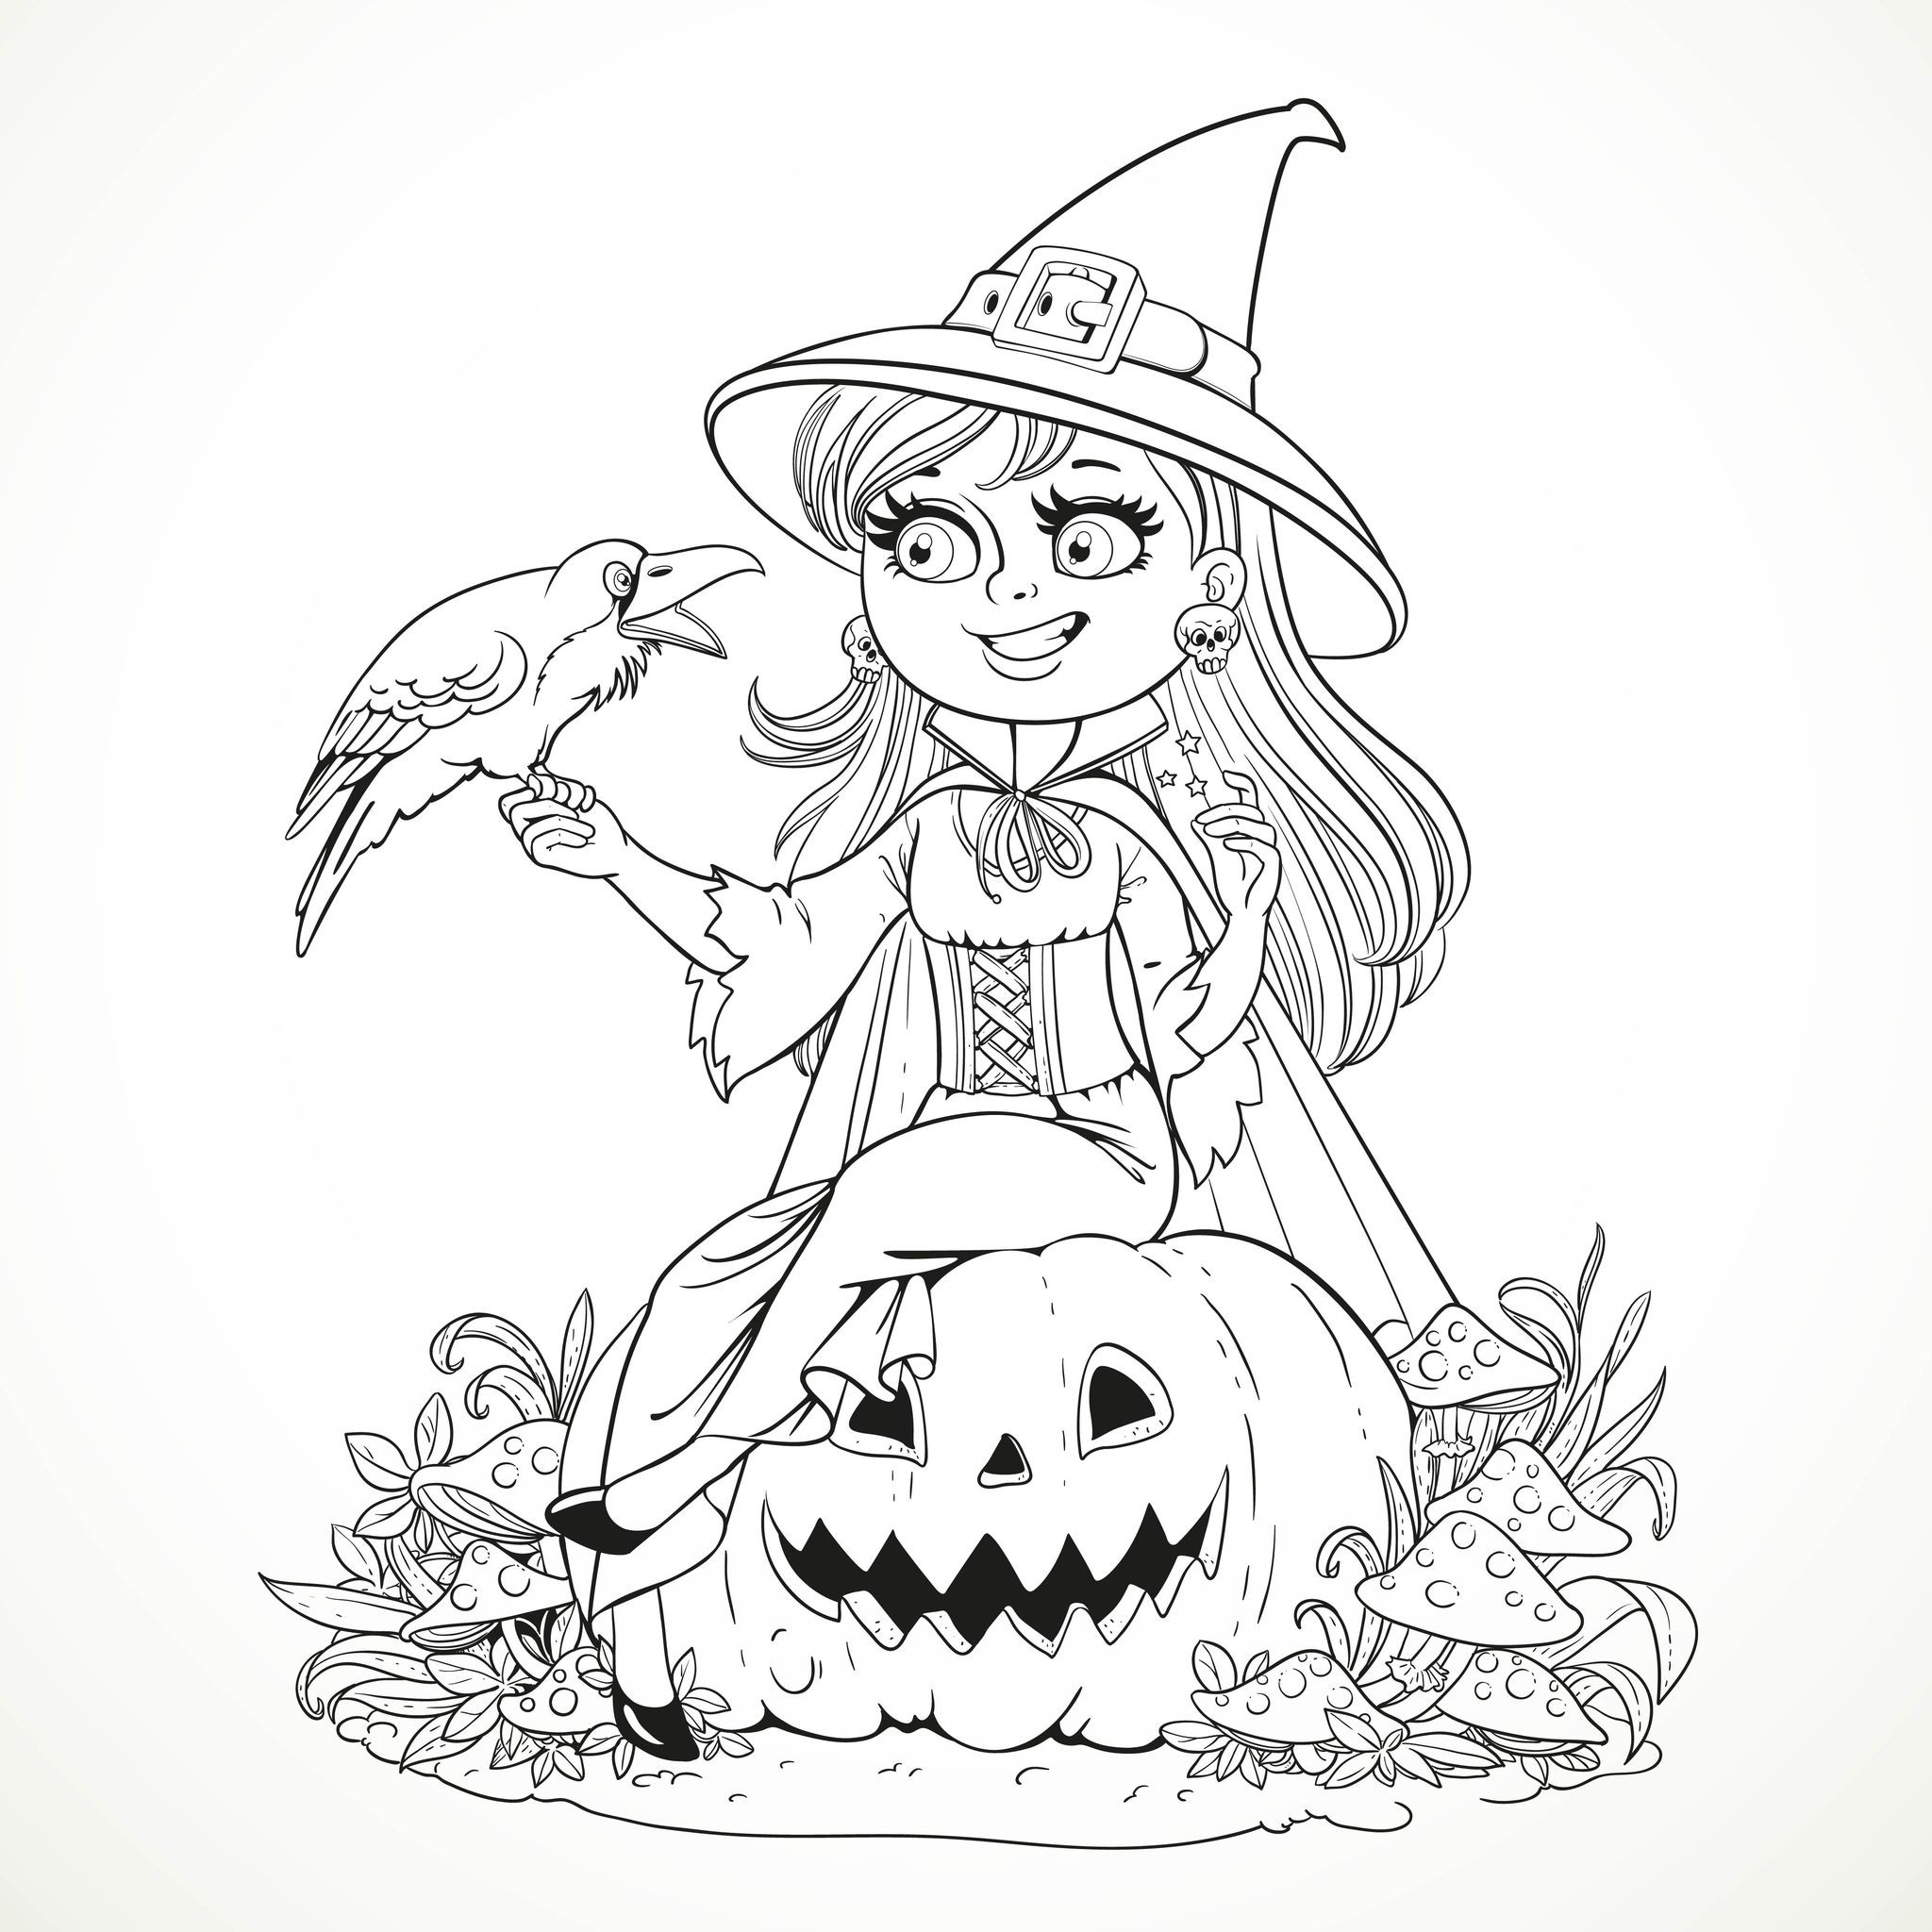 Coloring Pages For Adults Halloween  Halloween smiling witch and crow Halloween Adult